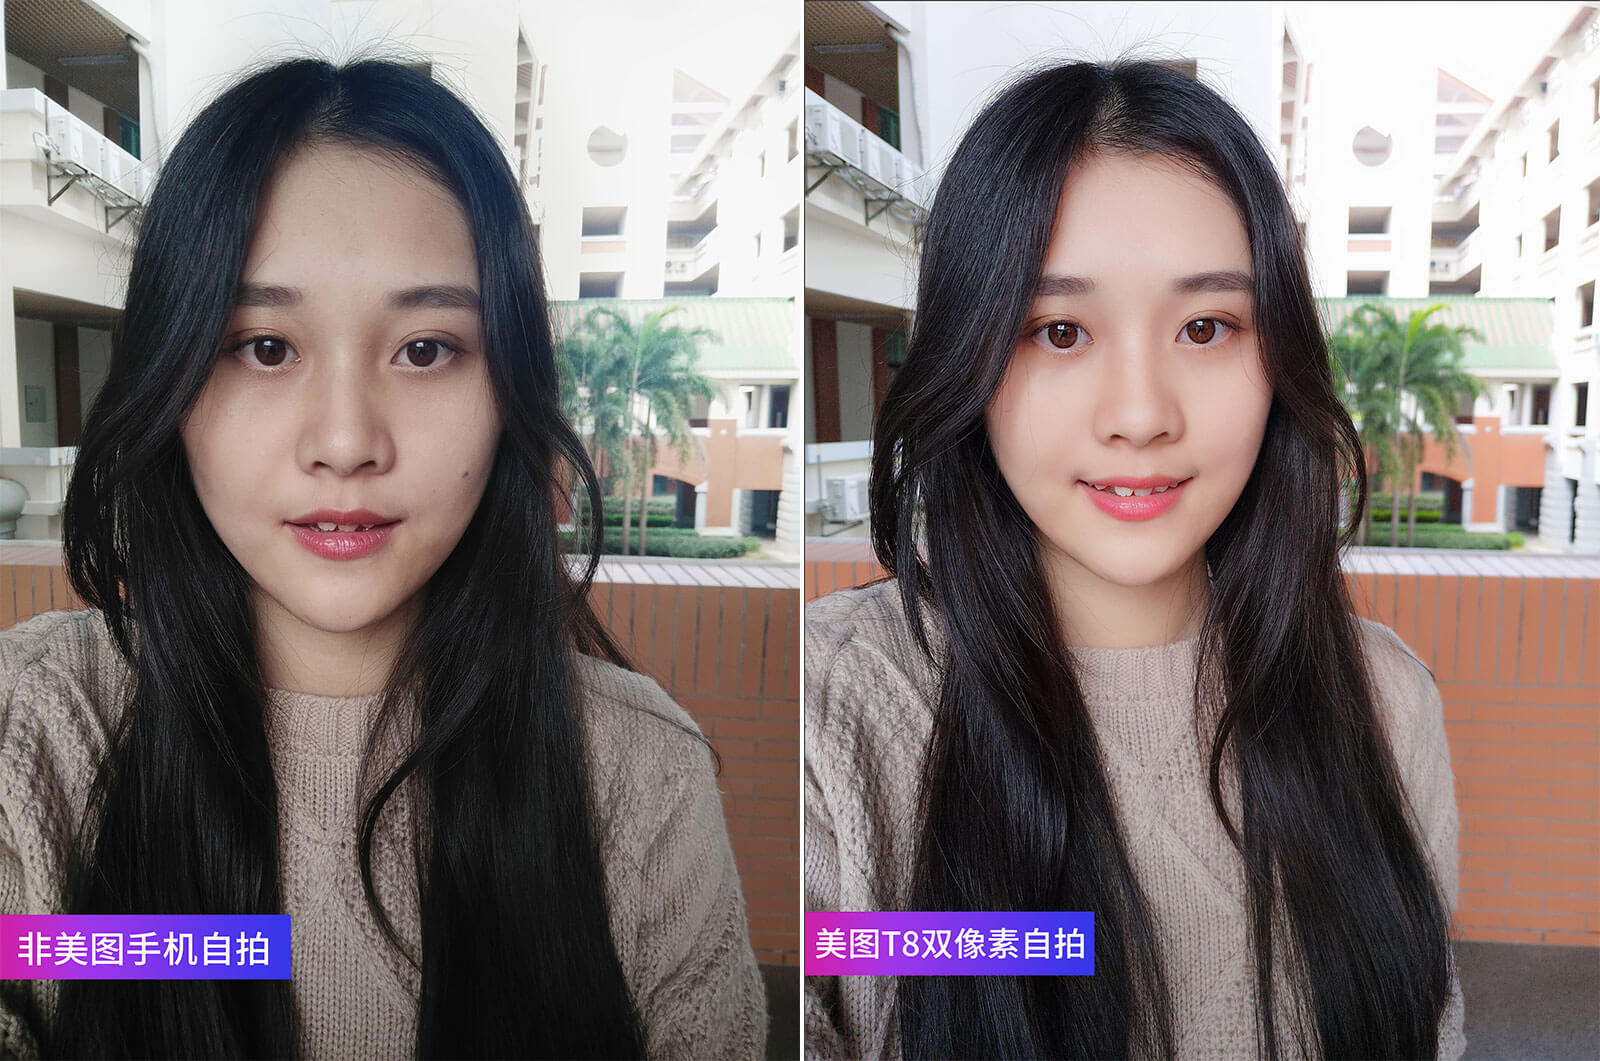 Selfies before and after the Meitu T8 smartphone.